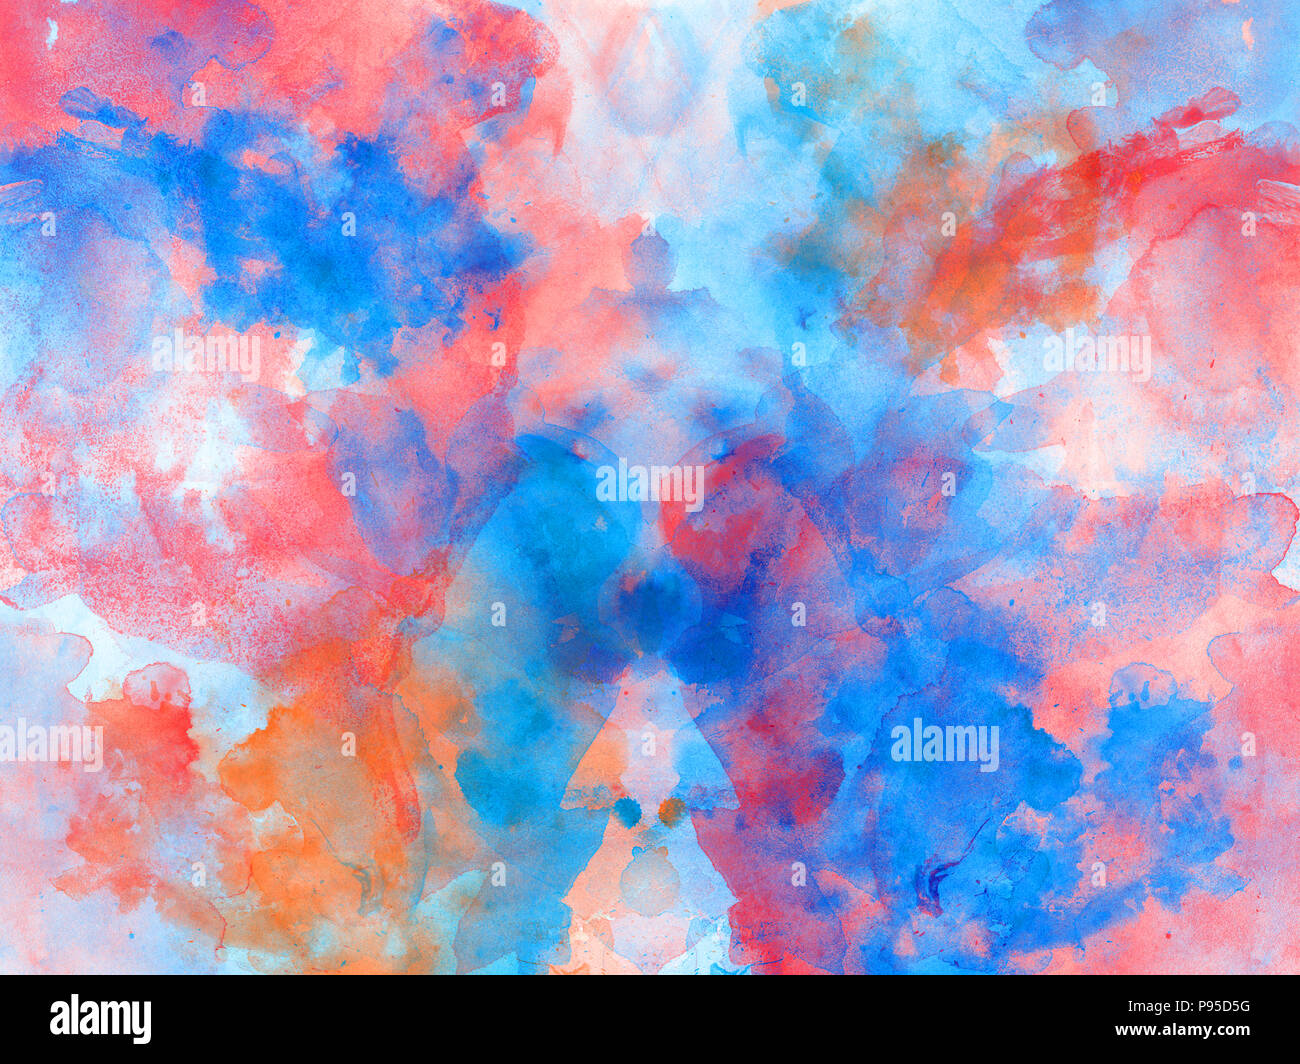 Abstract Watercolor Colorful Stains Paint Splatter Brushes